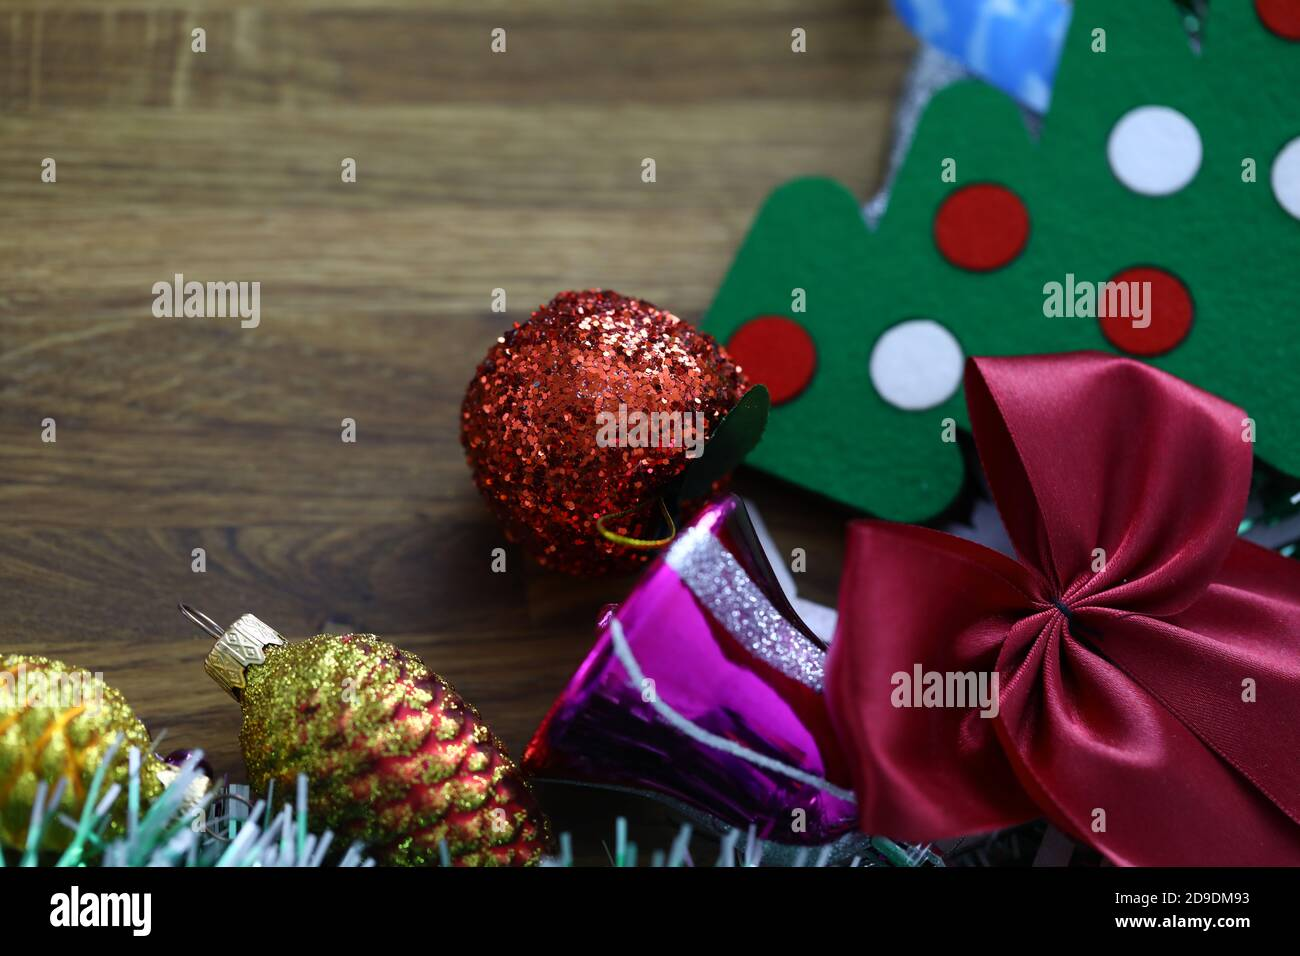 New Year S Decorations And Small Christmas Tree Lies On Table Stock Photo Alamy